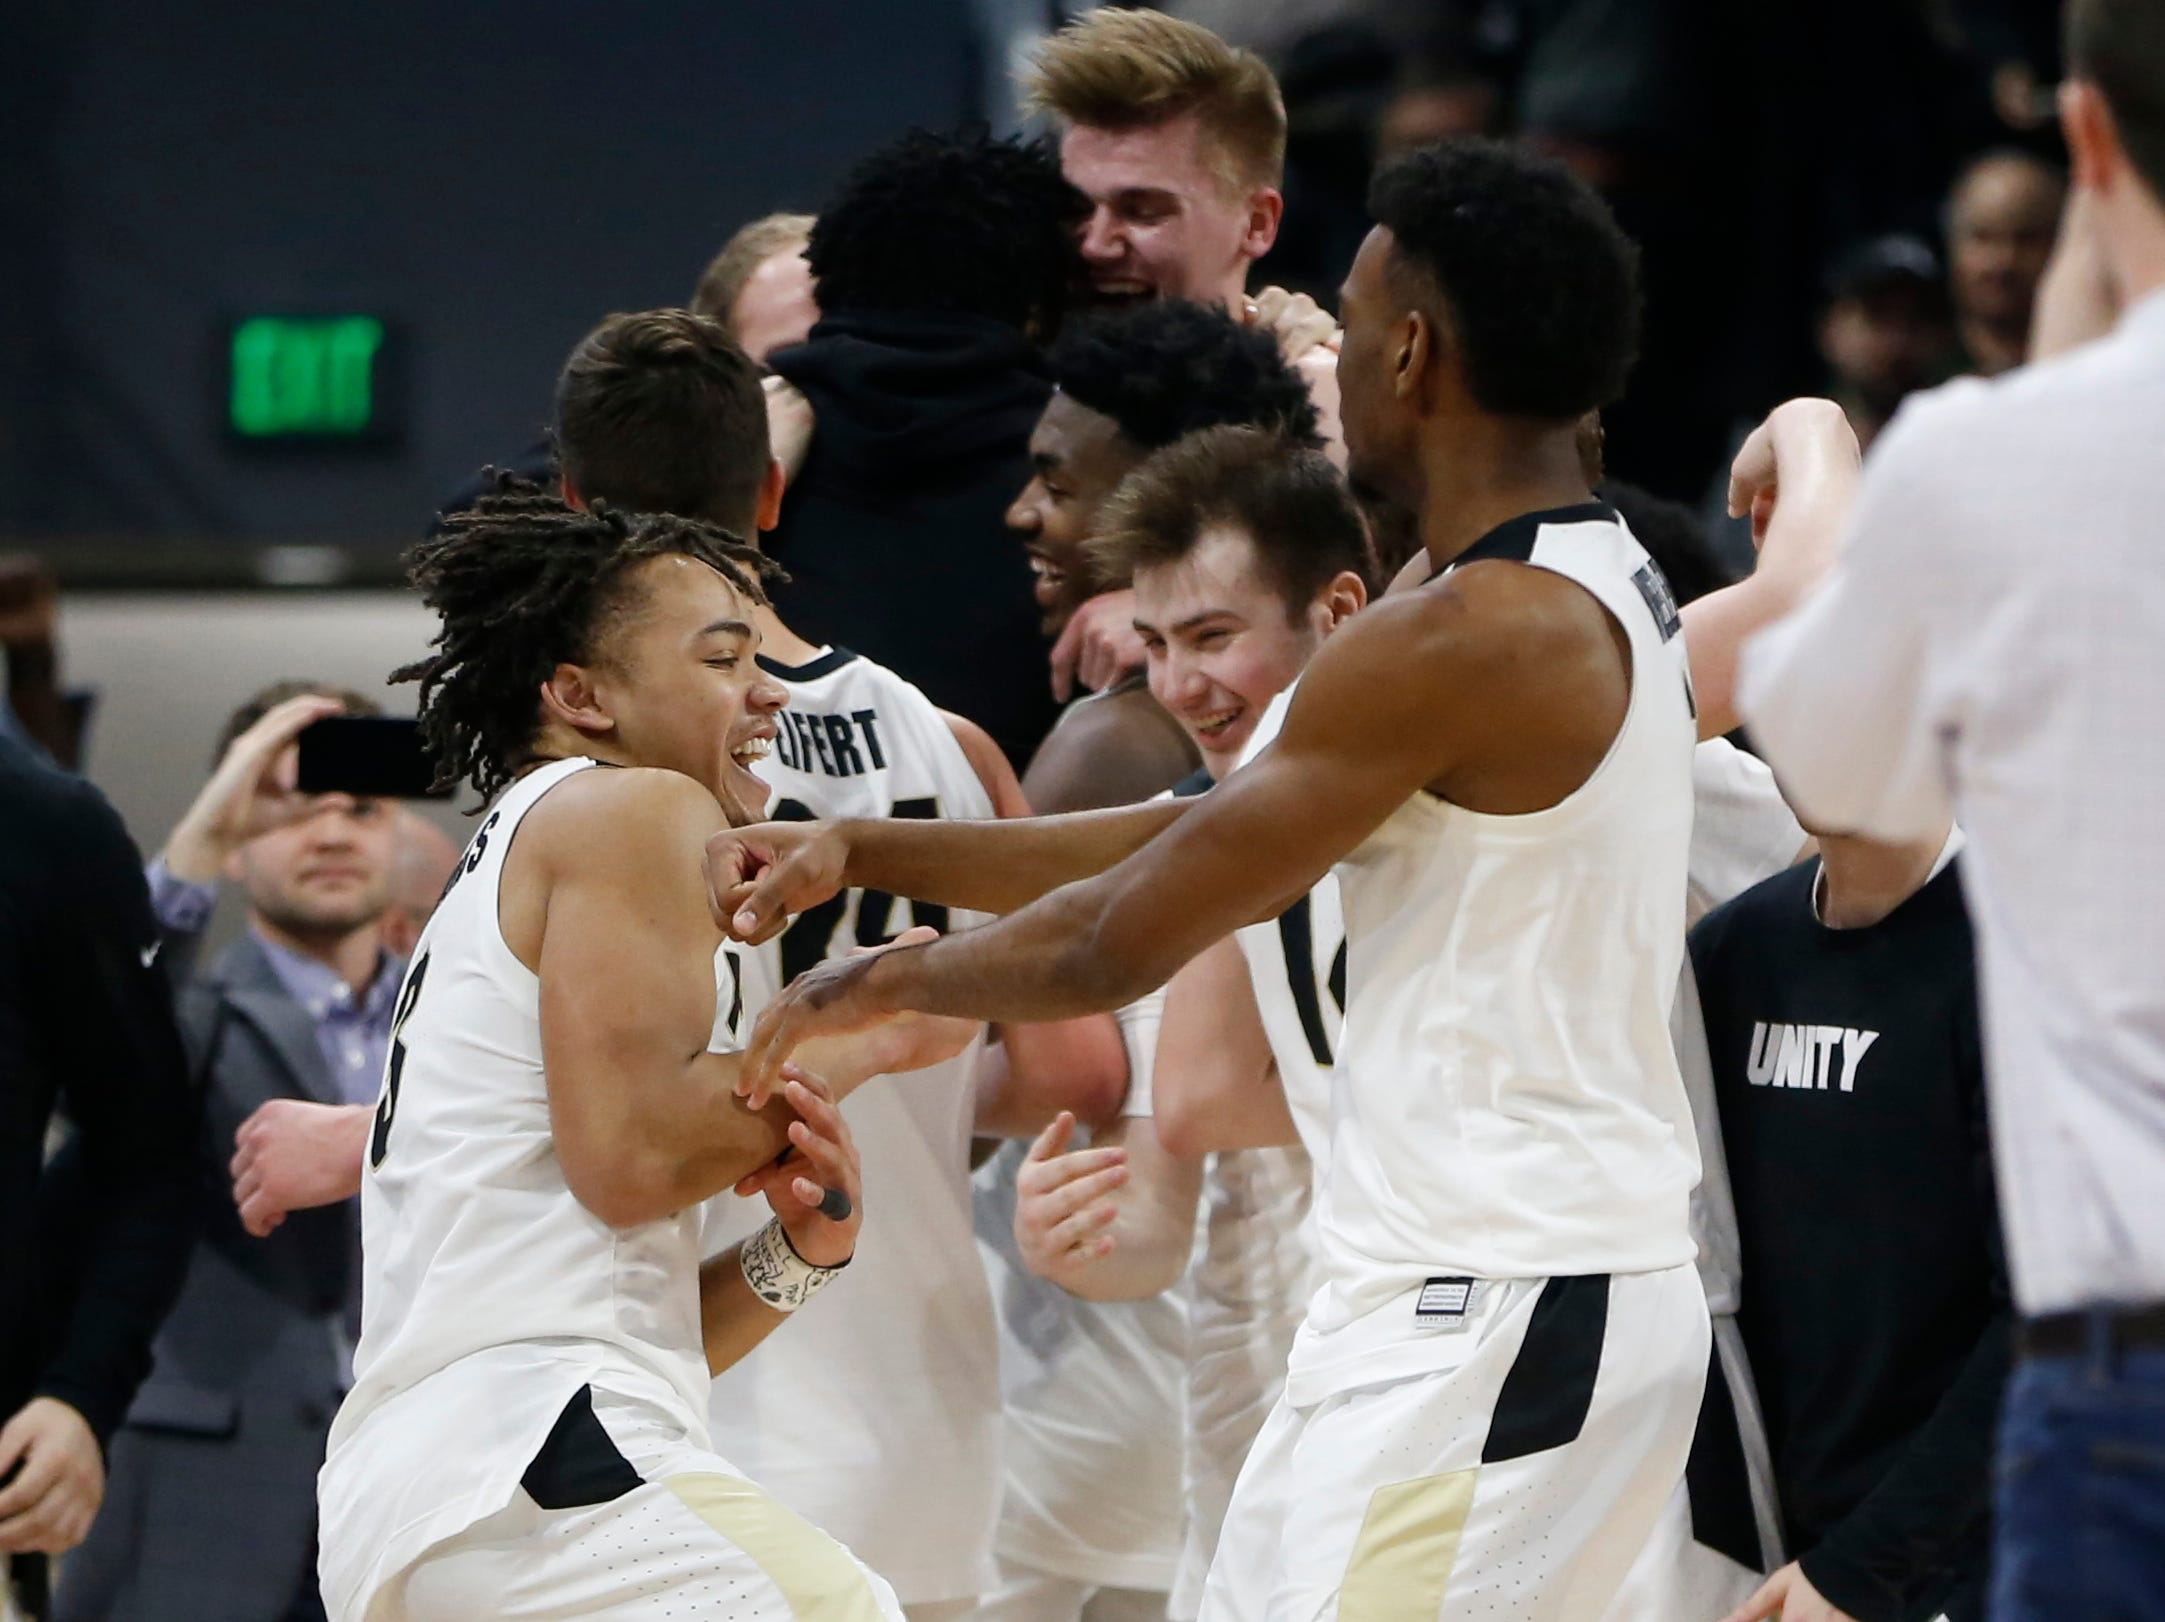 Mar 9, 2019; Evanston, IL, USA; Left Purdue Boilermakers guard Carsen Edwards (left) celebrates with teammates after defeating the Northwestern Wildcats at Welsh-Ryan Arena. Mandatory Credit: Nuccio DiNuzzo-USA TODAY Sports